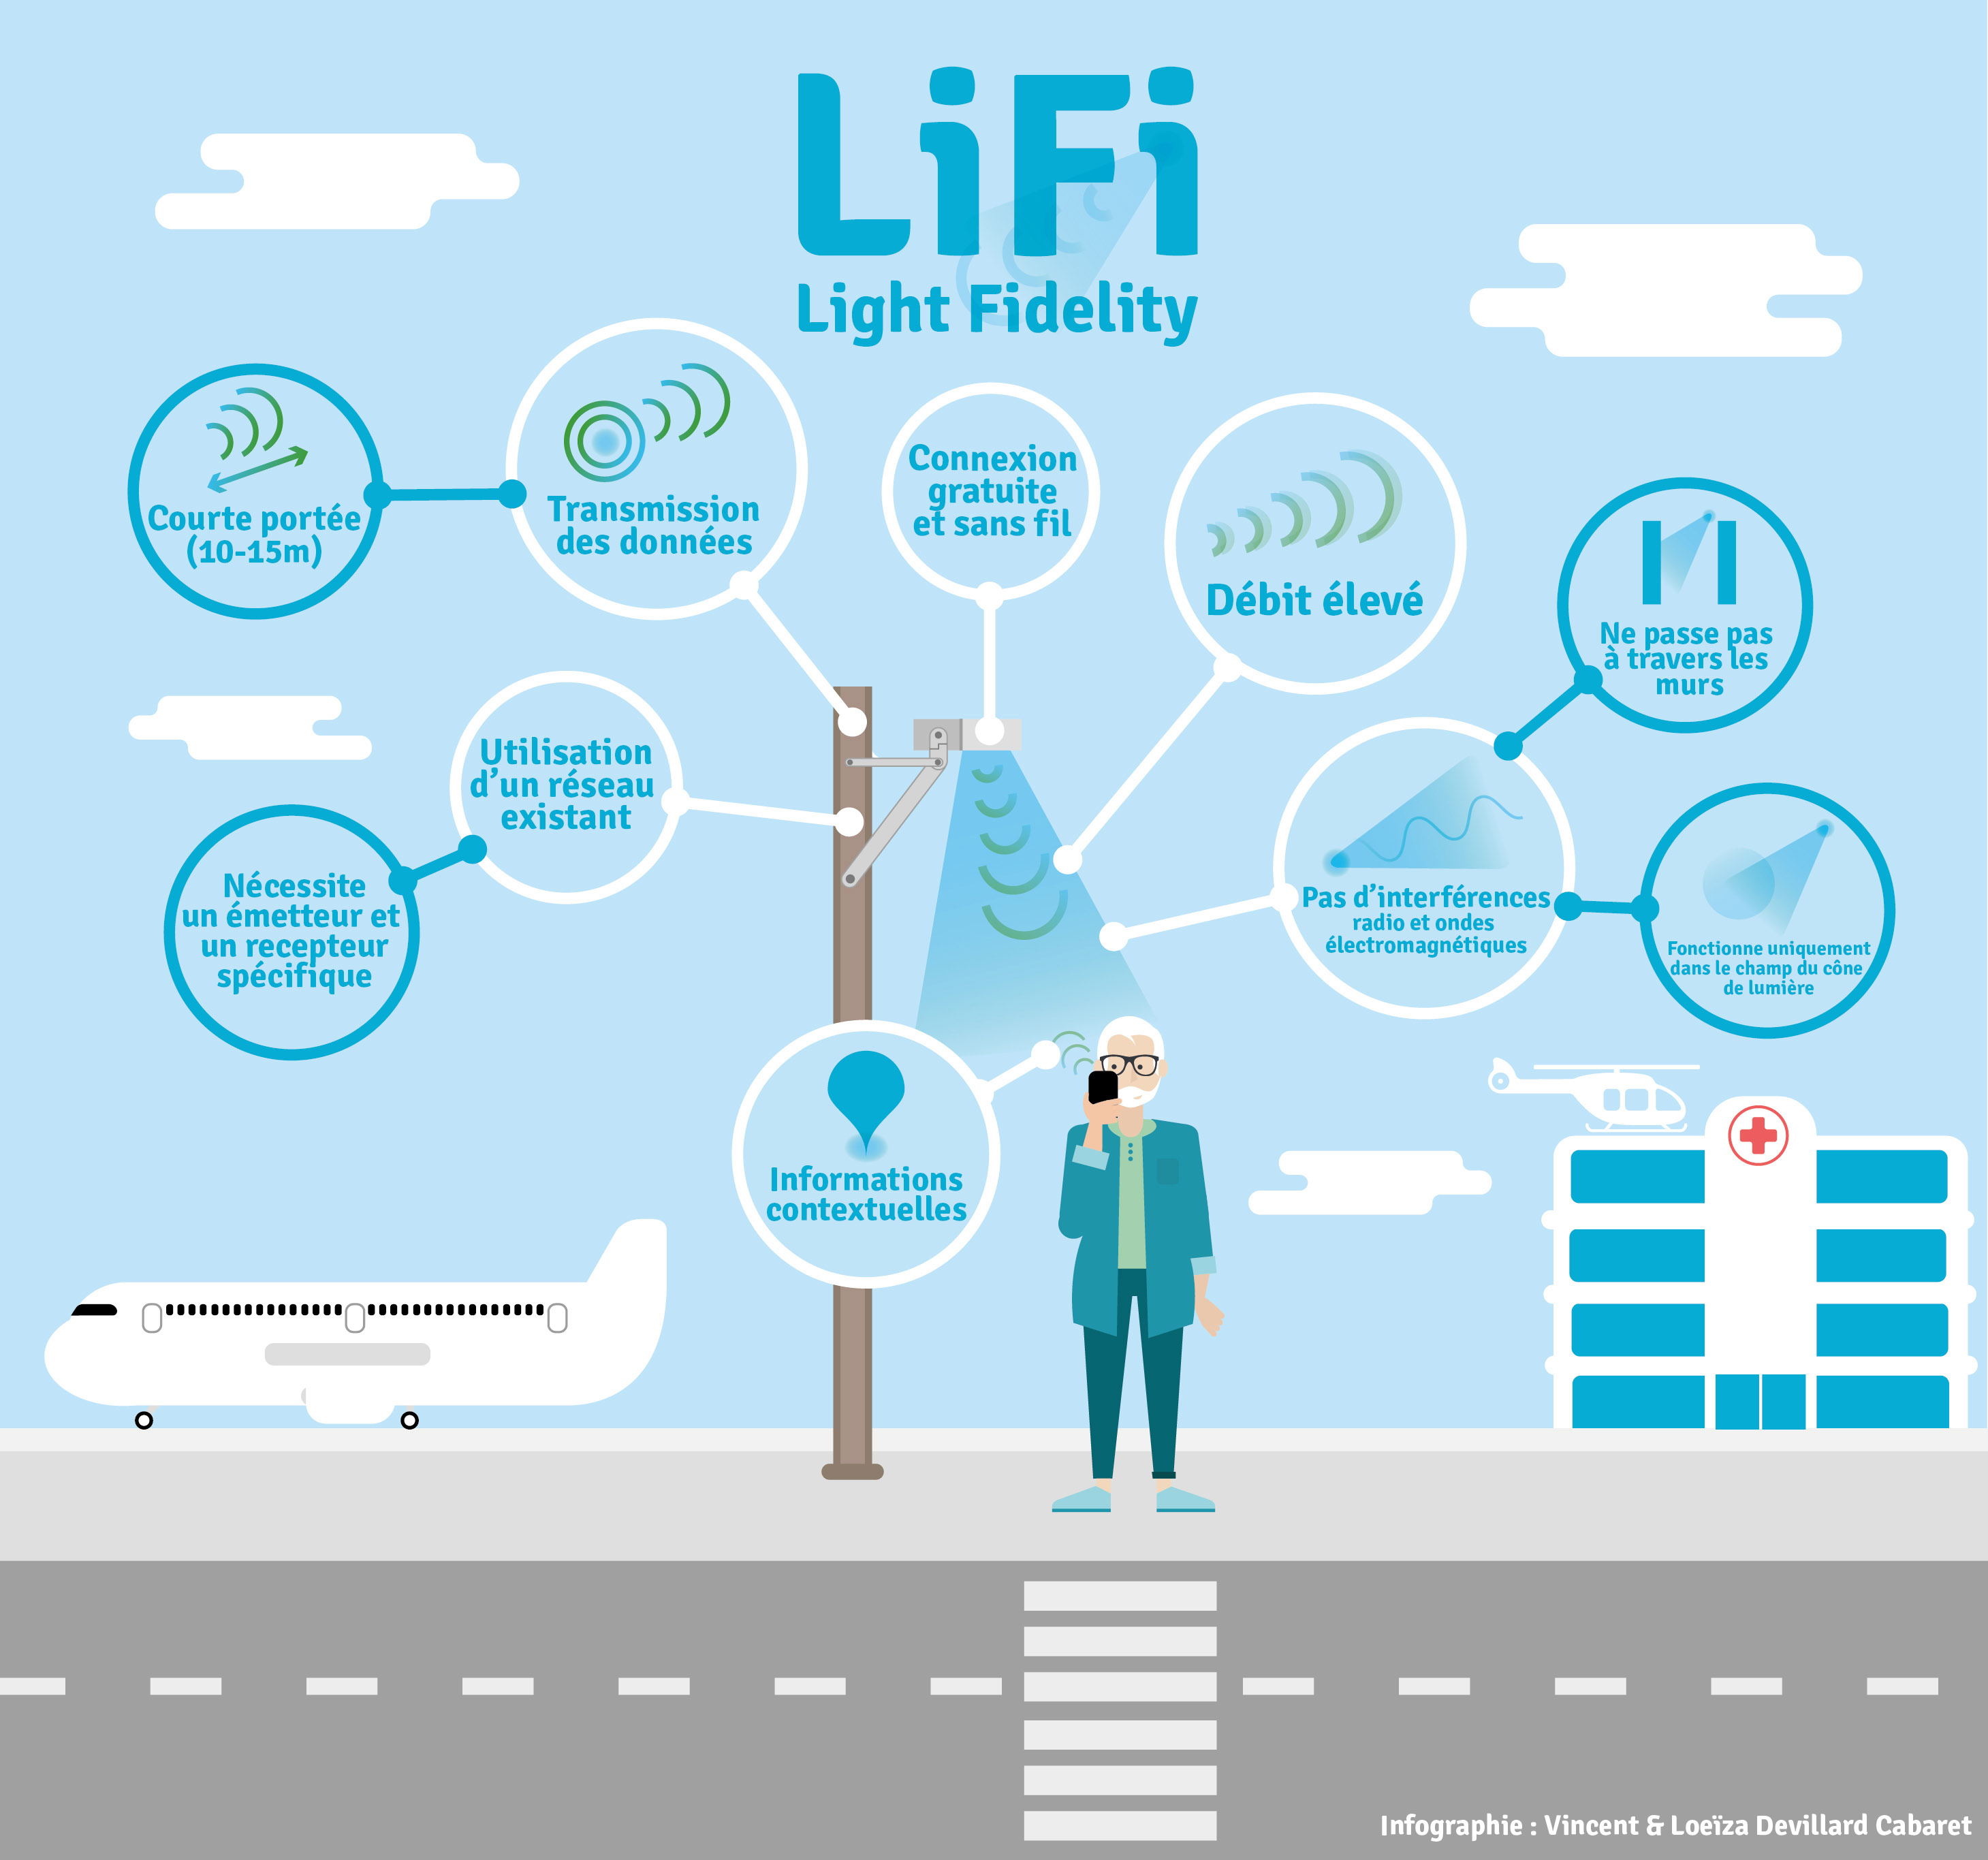 Lifi - Light Fidelity - Le fonctionnement du LiFi